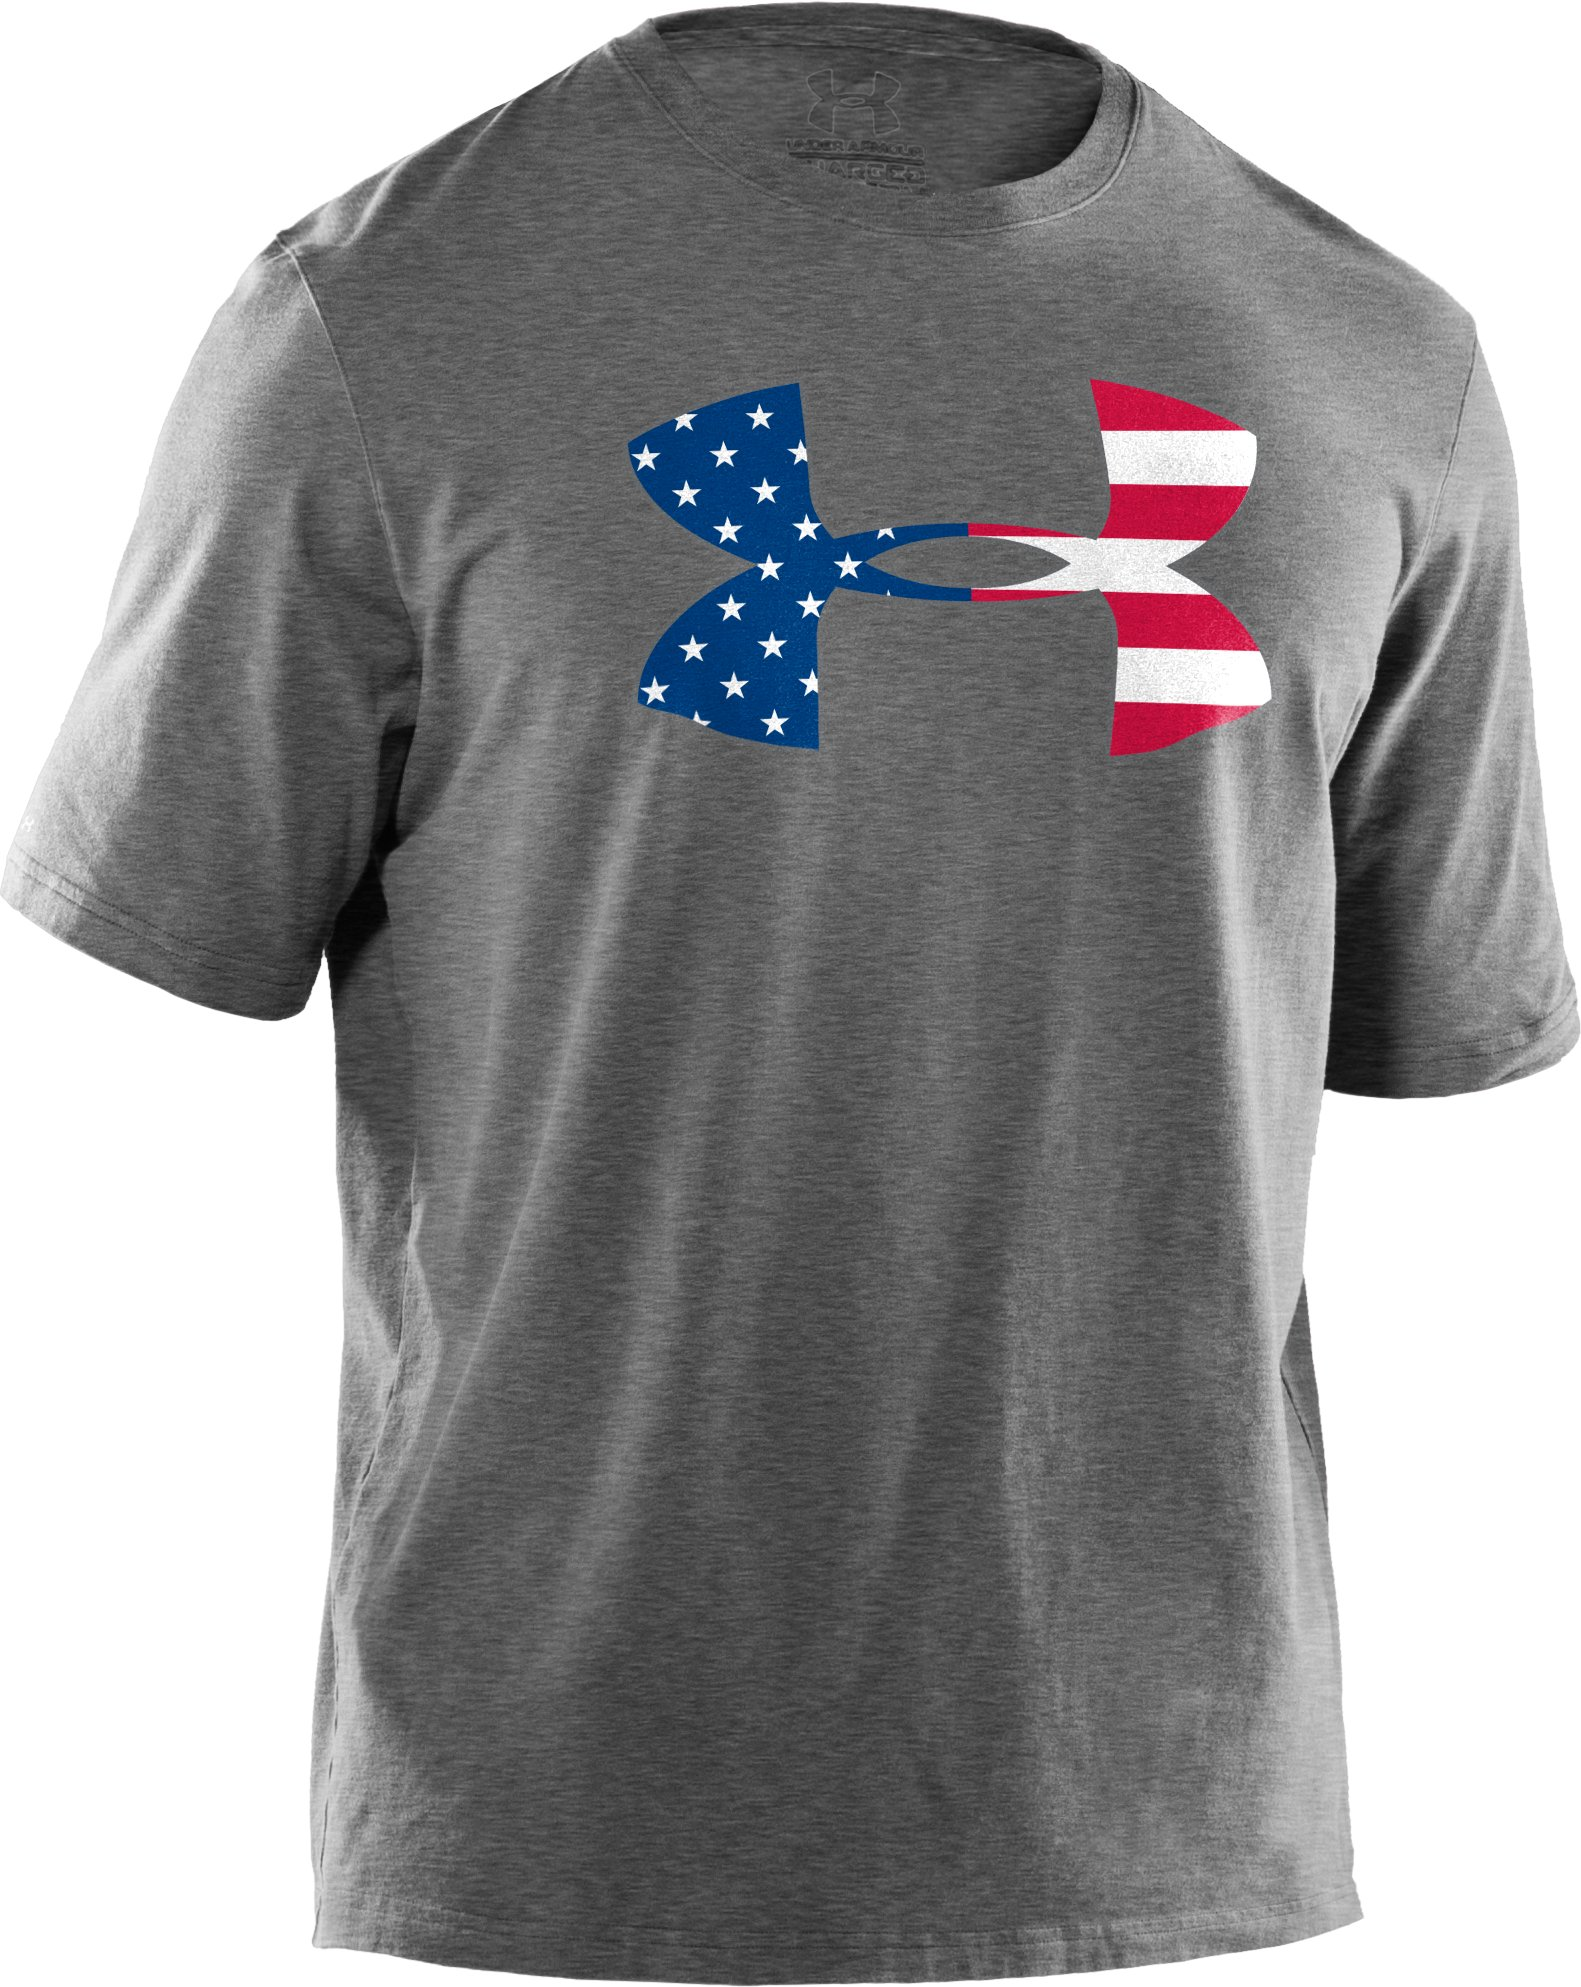 Men's UA Big Flag Logo T-Shirt, True Gray Heather